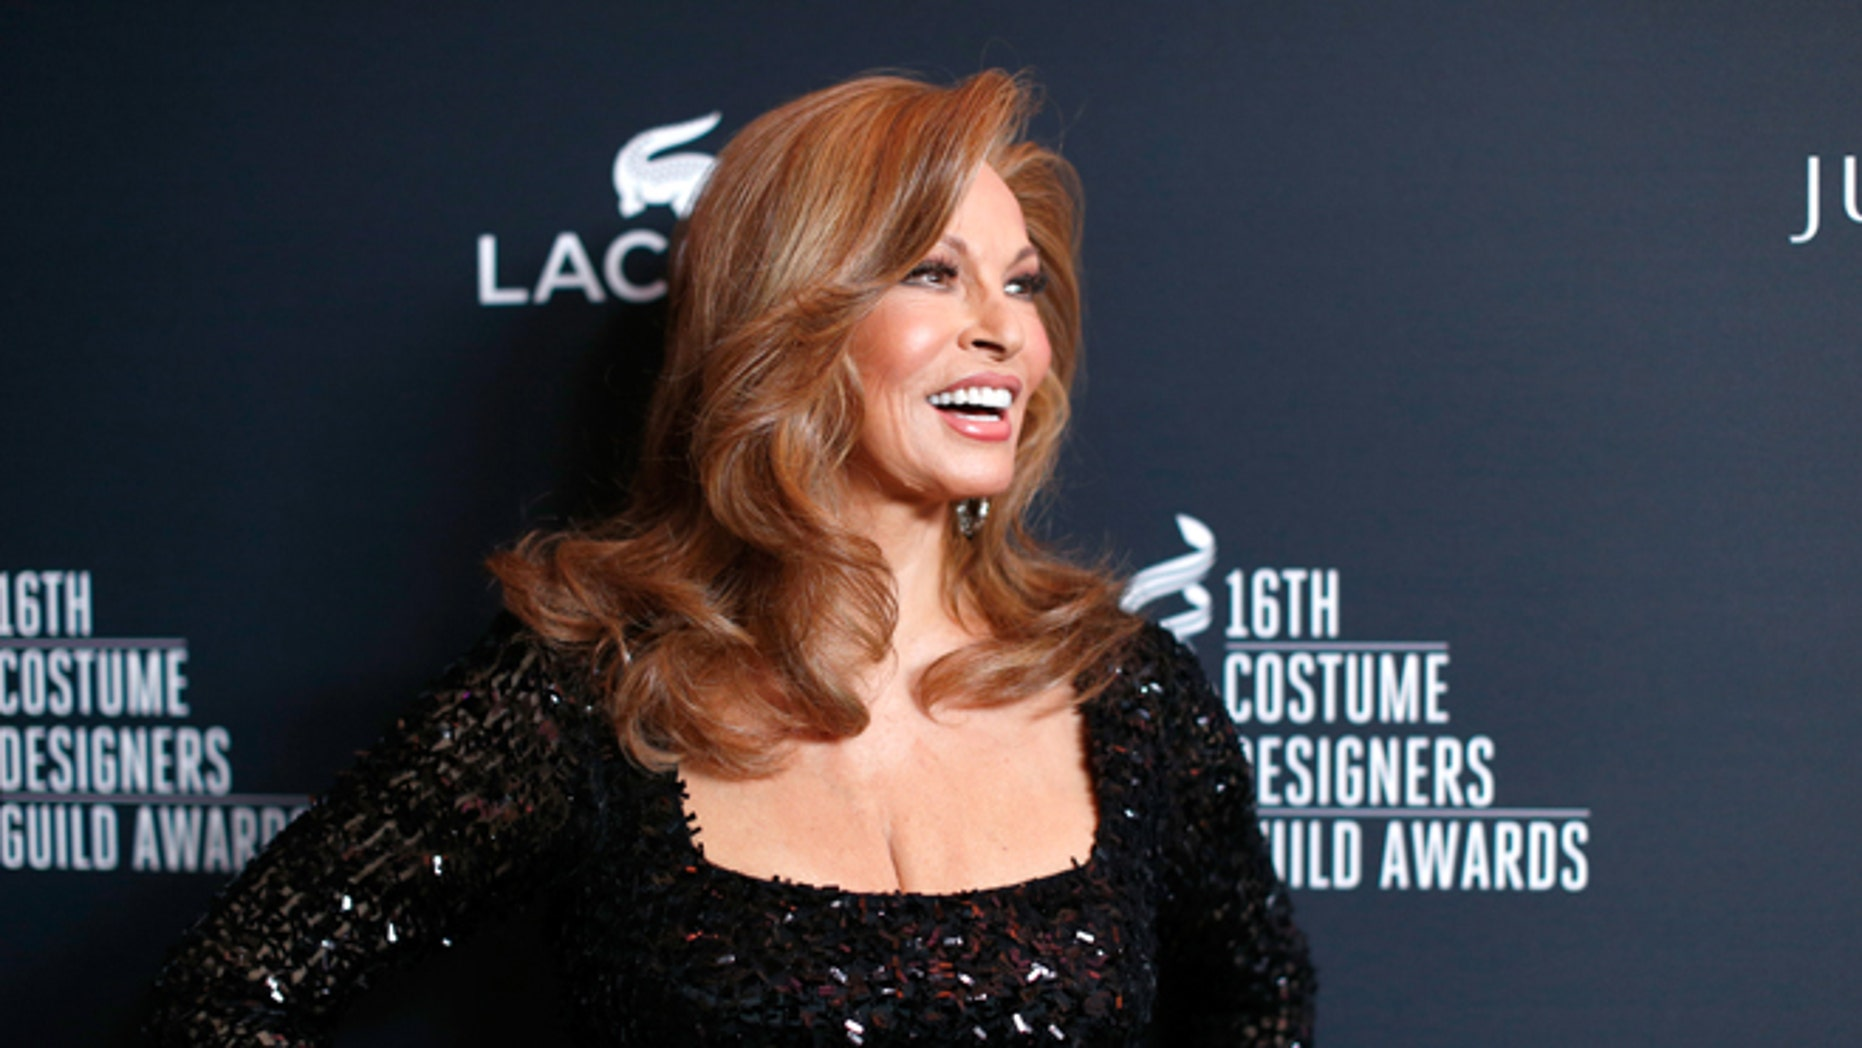 Actress Raquel Welch attends the 16th Costume Designers Guild Awards with presenting sponsor Lacoste at The Beverly Hilton Hotel on February 22, 2014 in Beverly Hills, California.  (Photo by Christopher Polk/Getty Images for CDG)